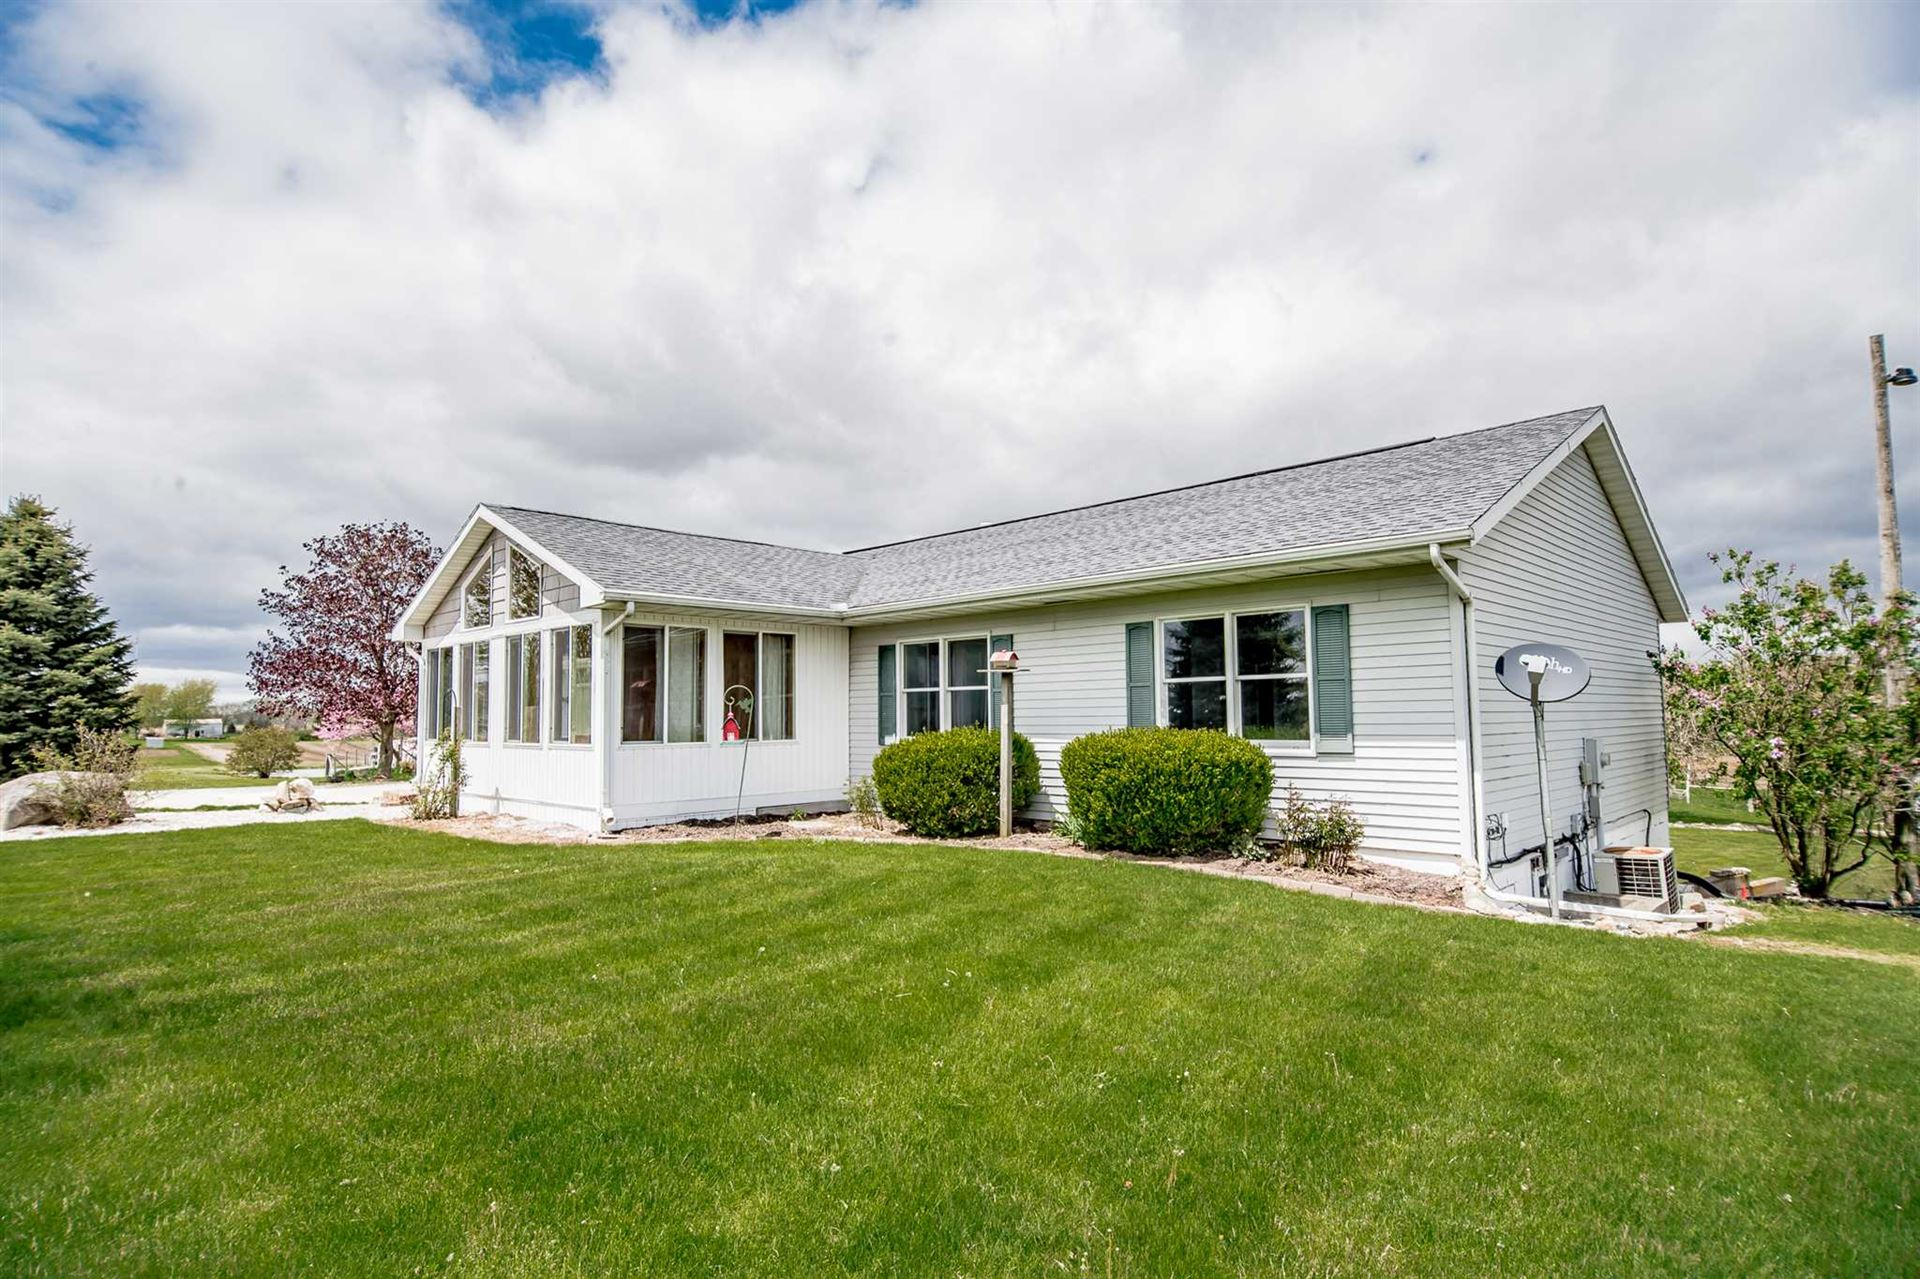 Photo of 13761 County Road 52, Syracuse, IN 46567 (MLS # 202016718)